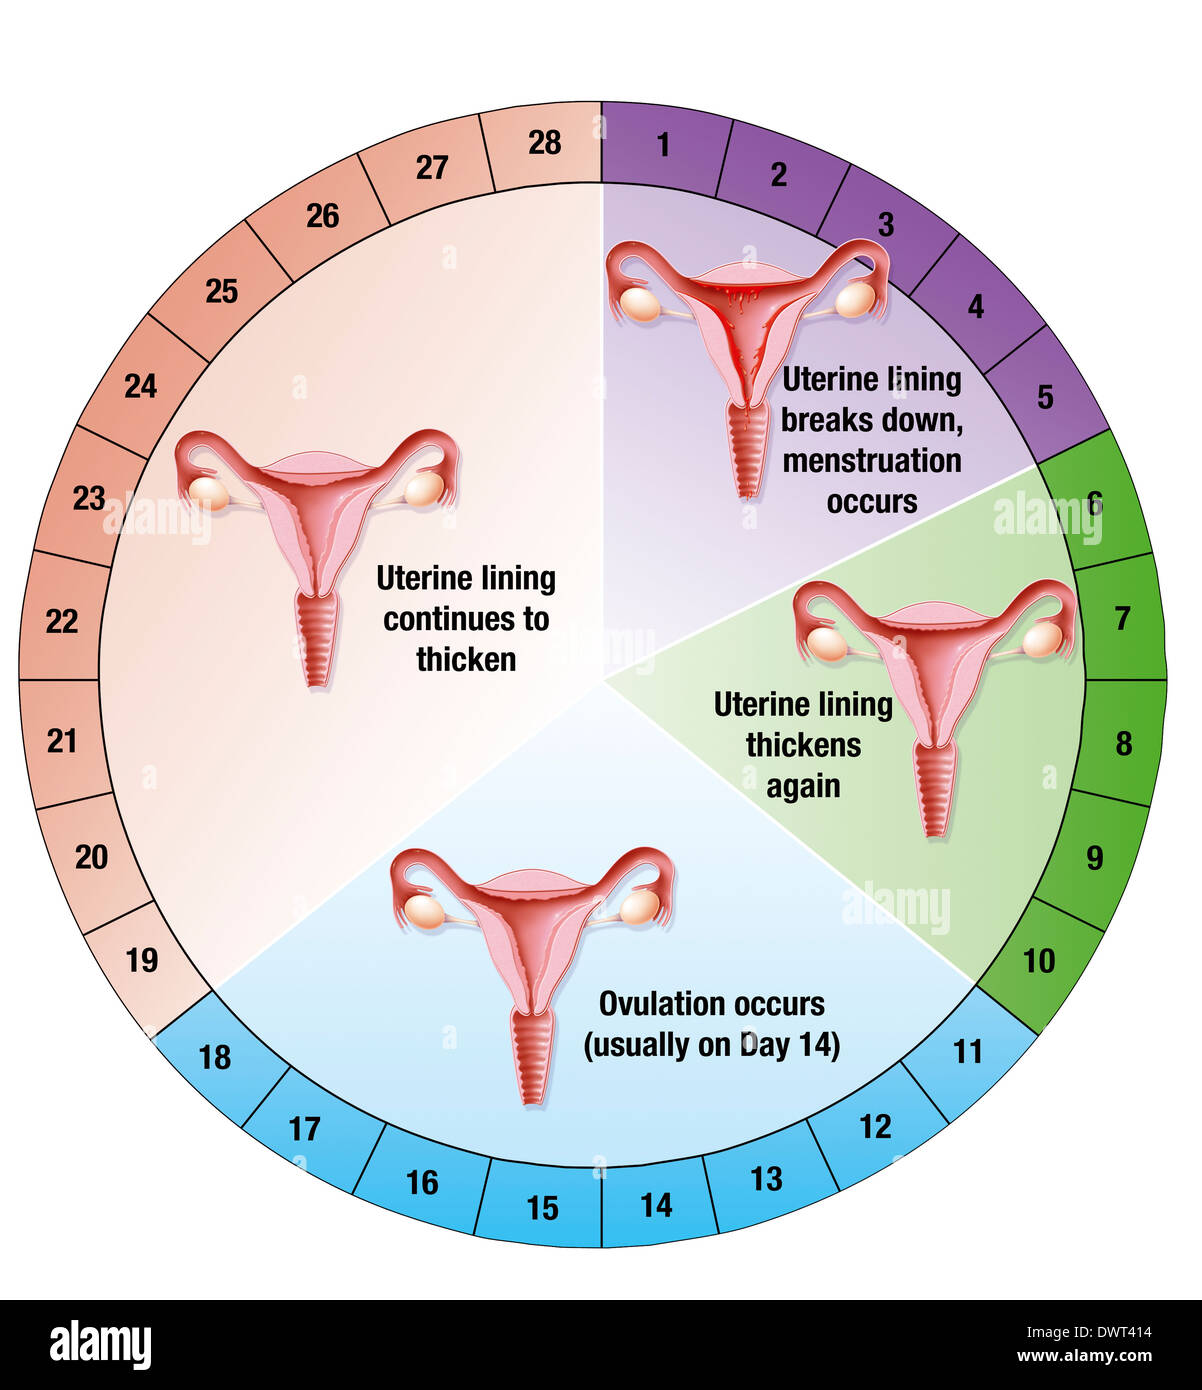 Menstrual cycle drawing stock photo 67527520 alamy menstrual cycle drawing ccuart